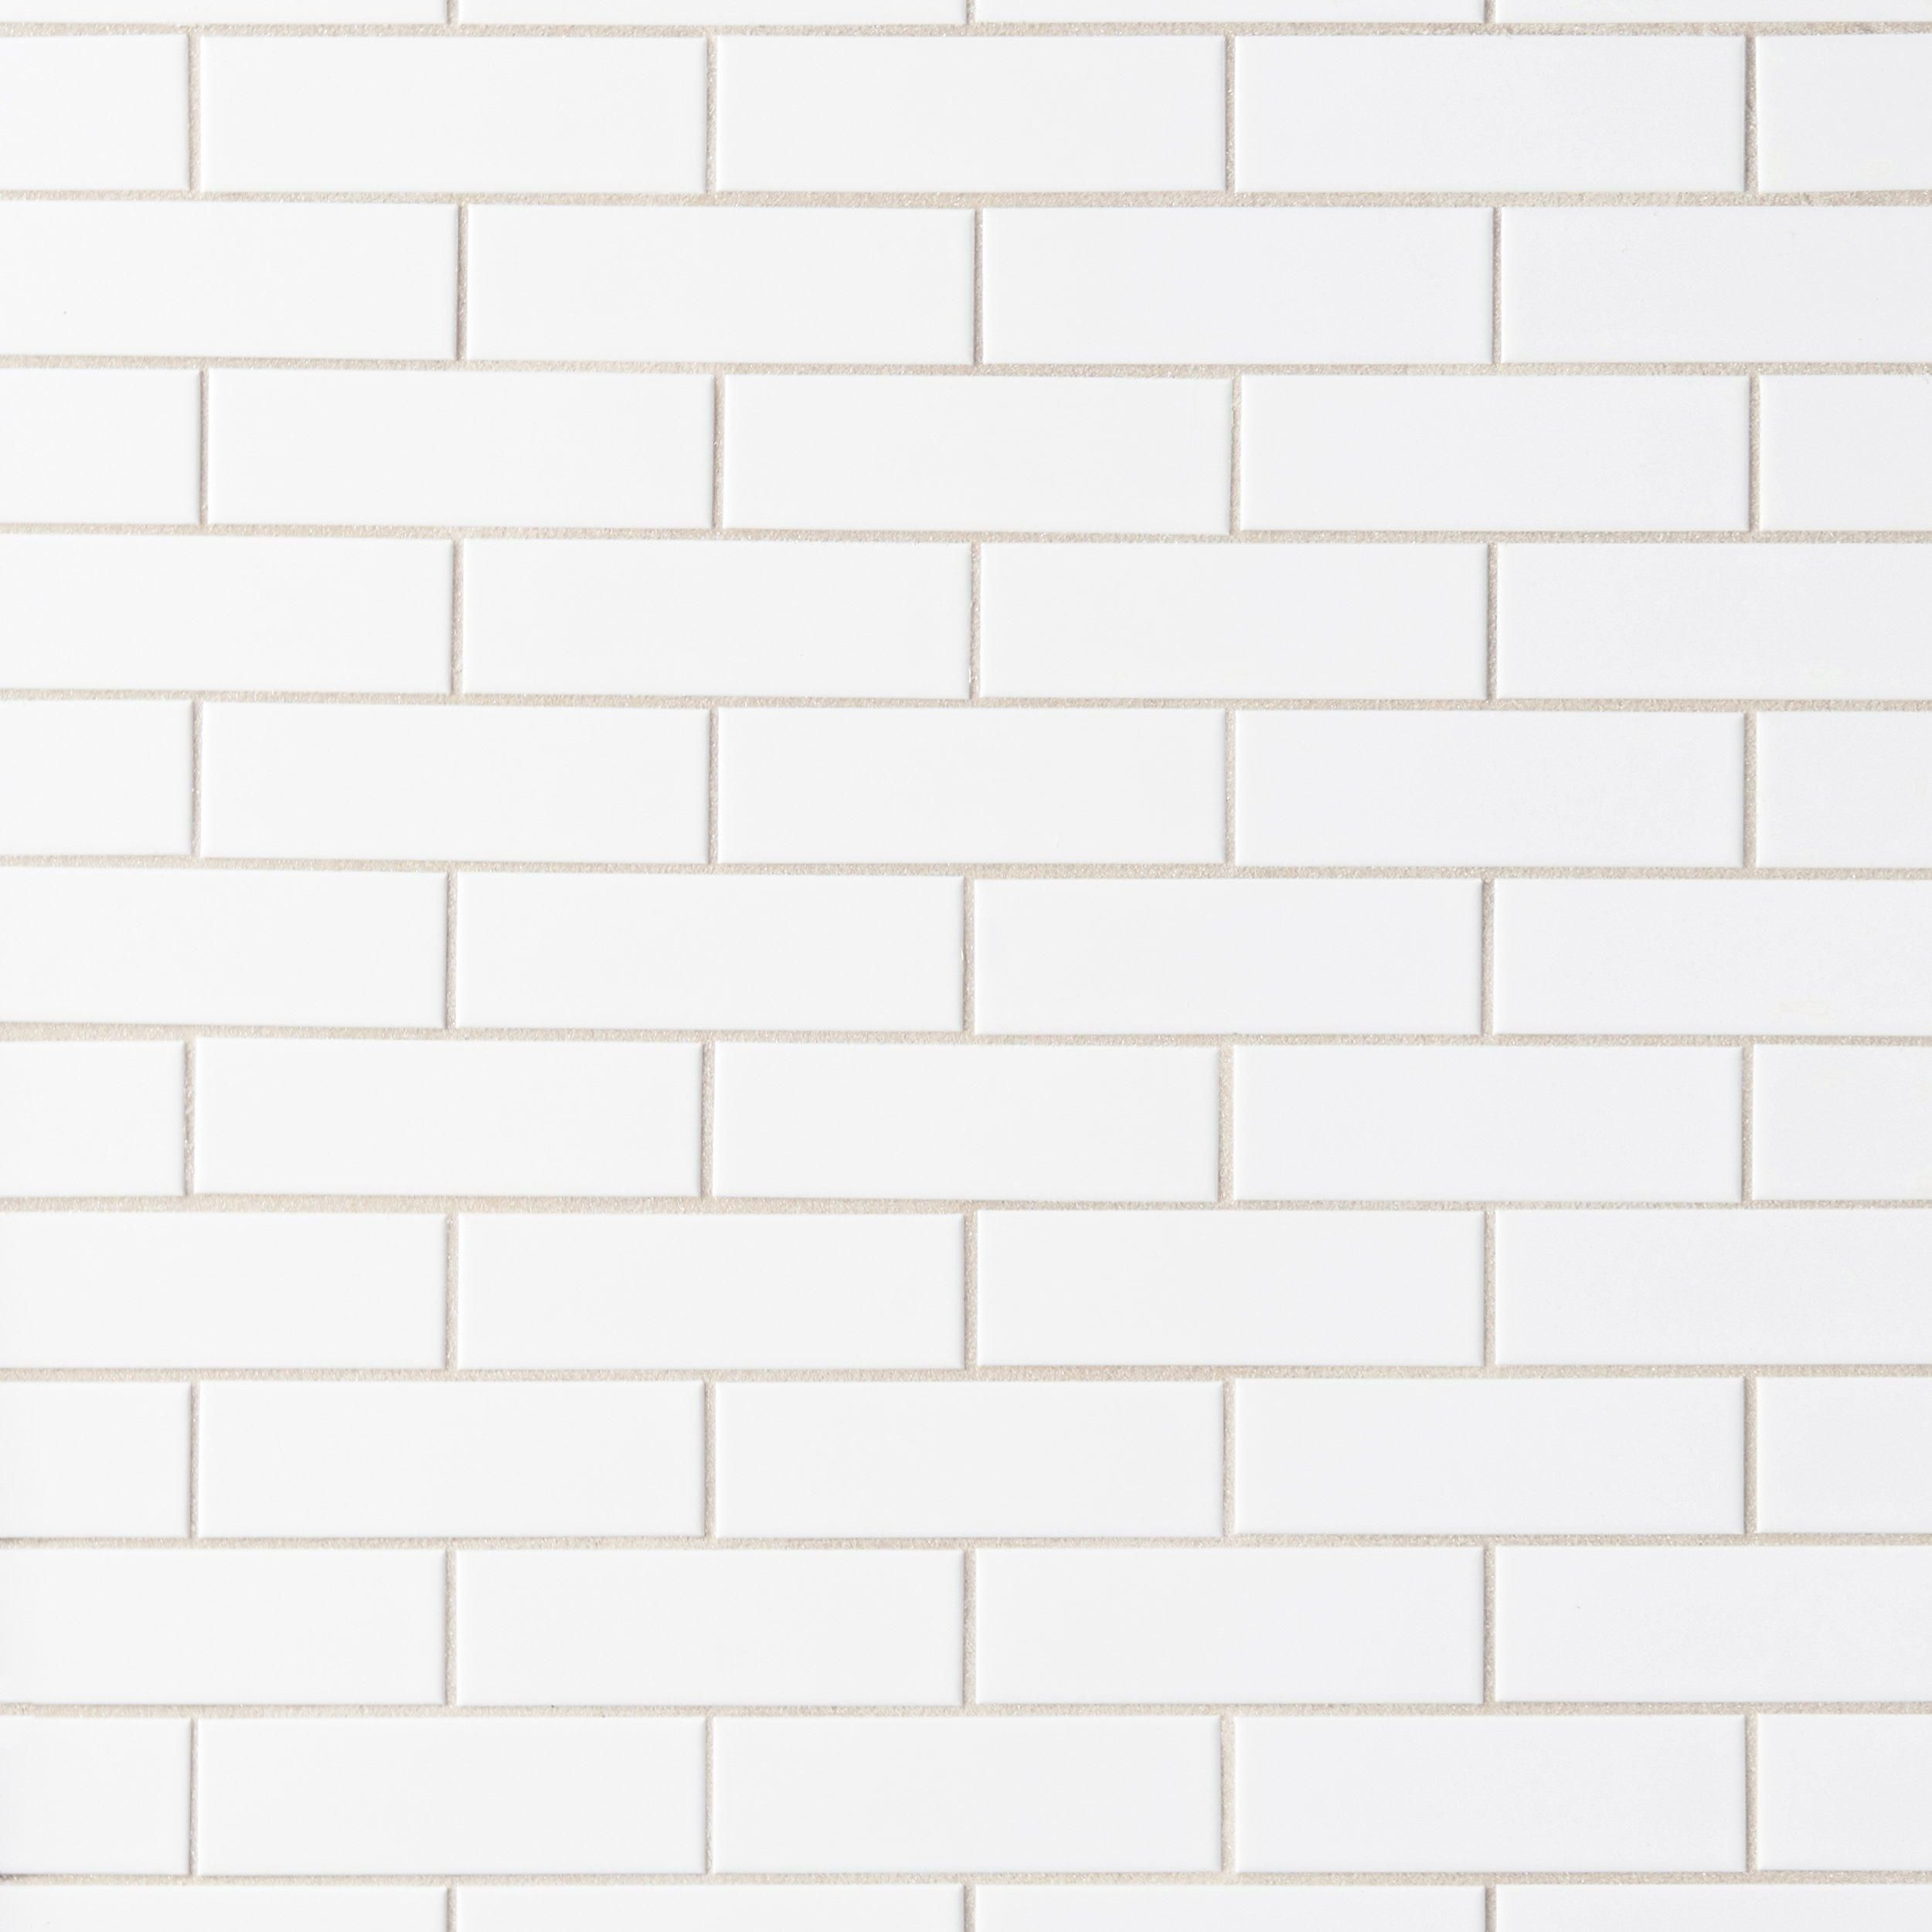 White Brick Ceramic Mosaic Floor Decor White Brick Tiles White Brick White Mosaic Tiles